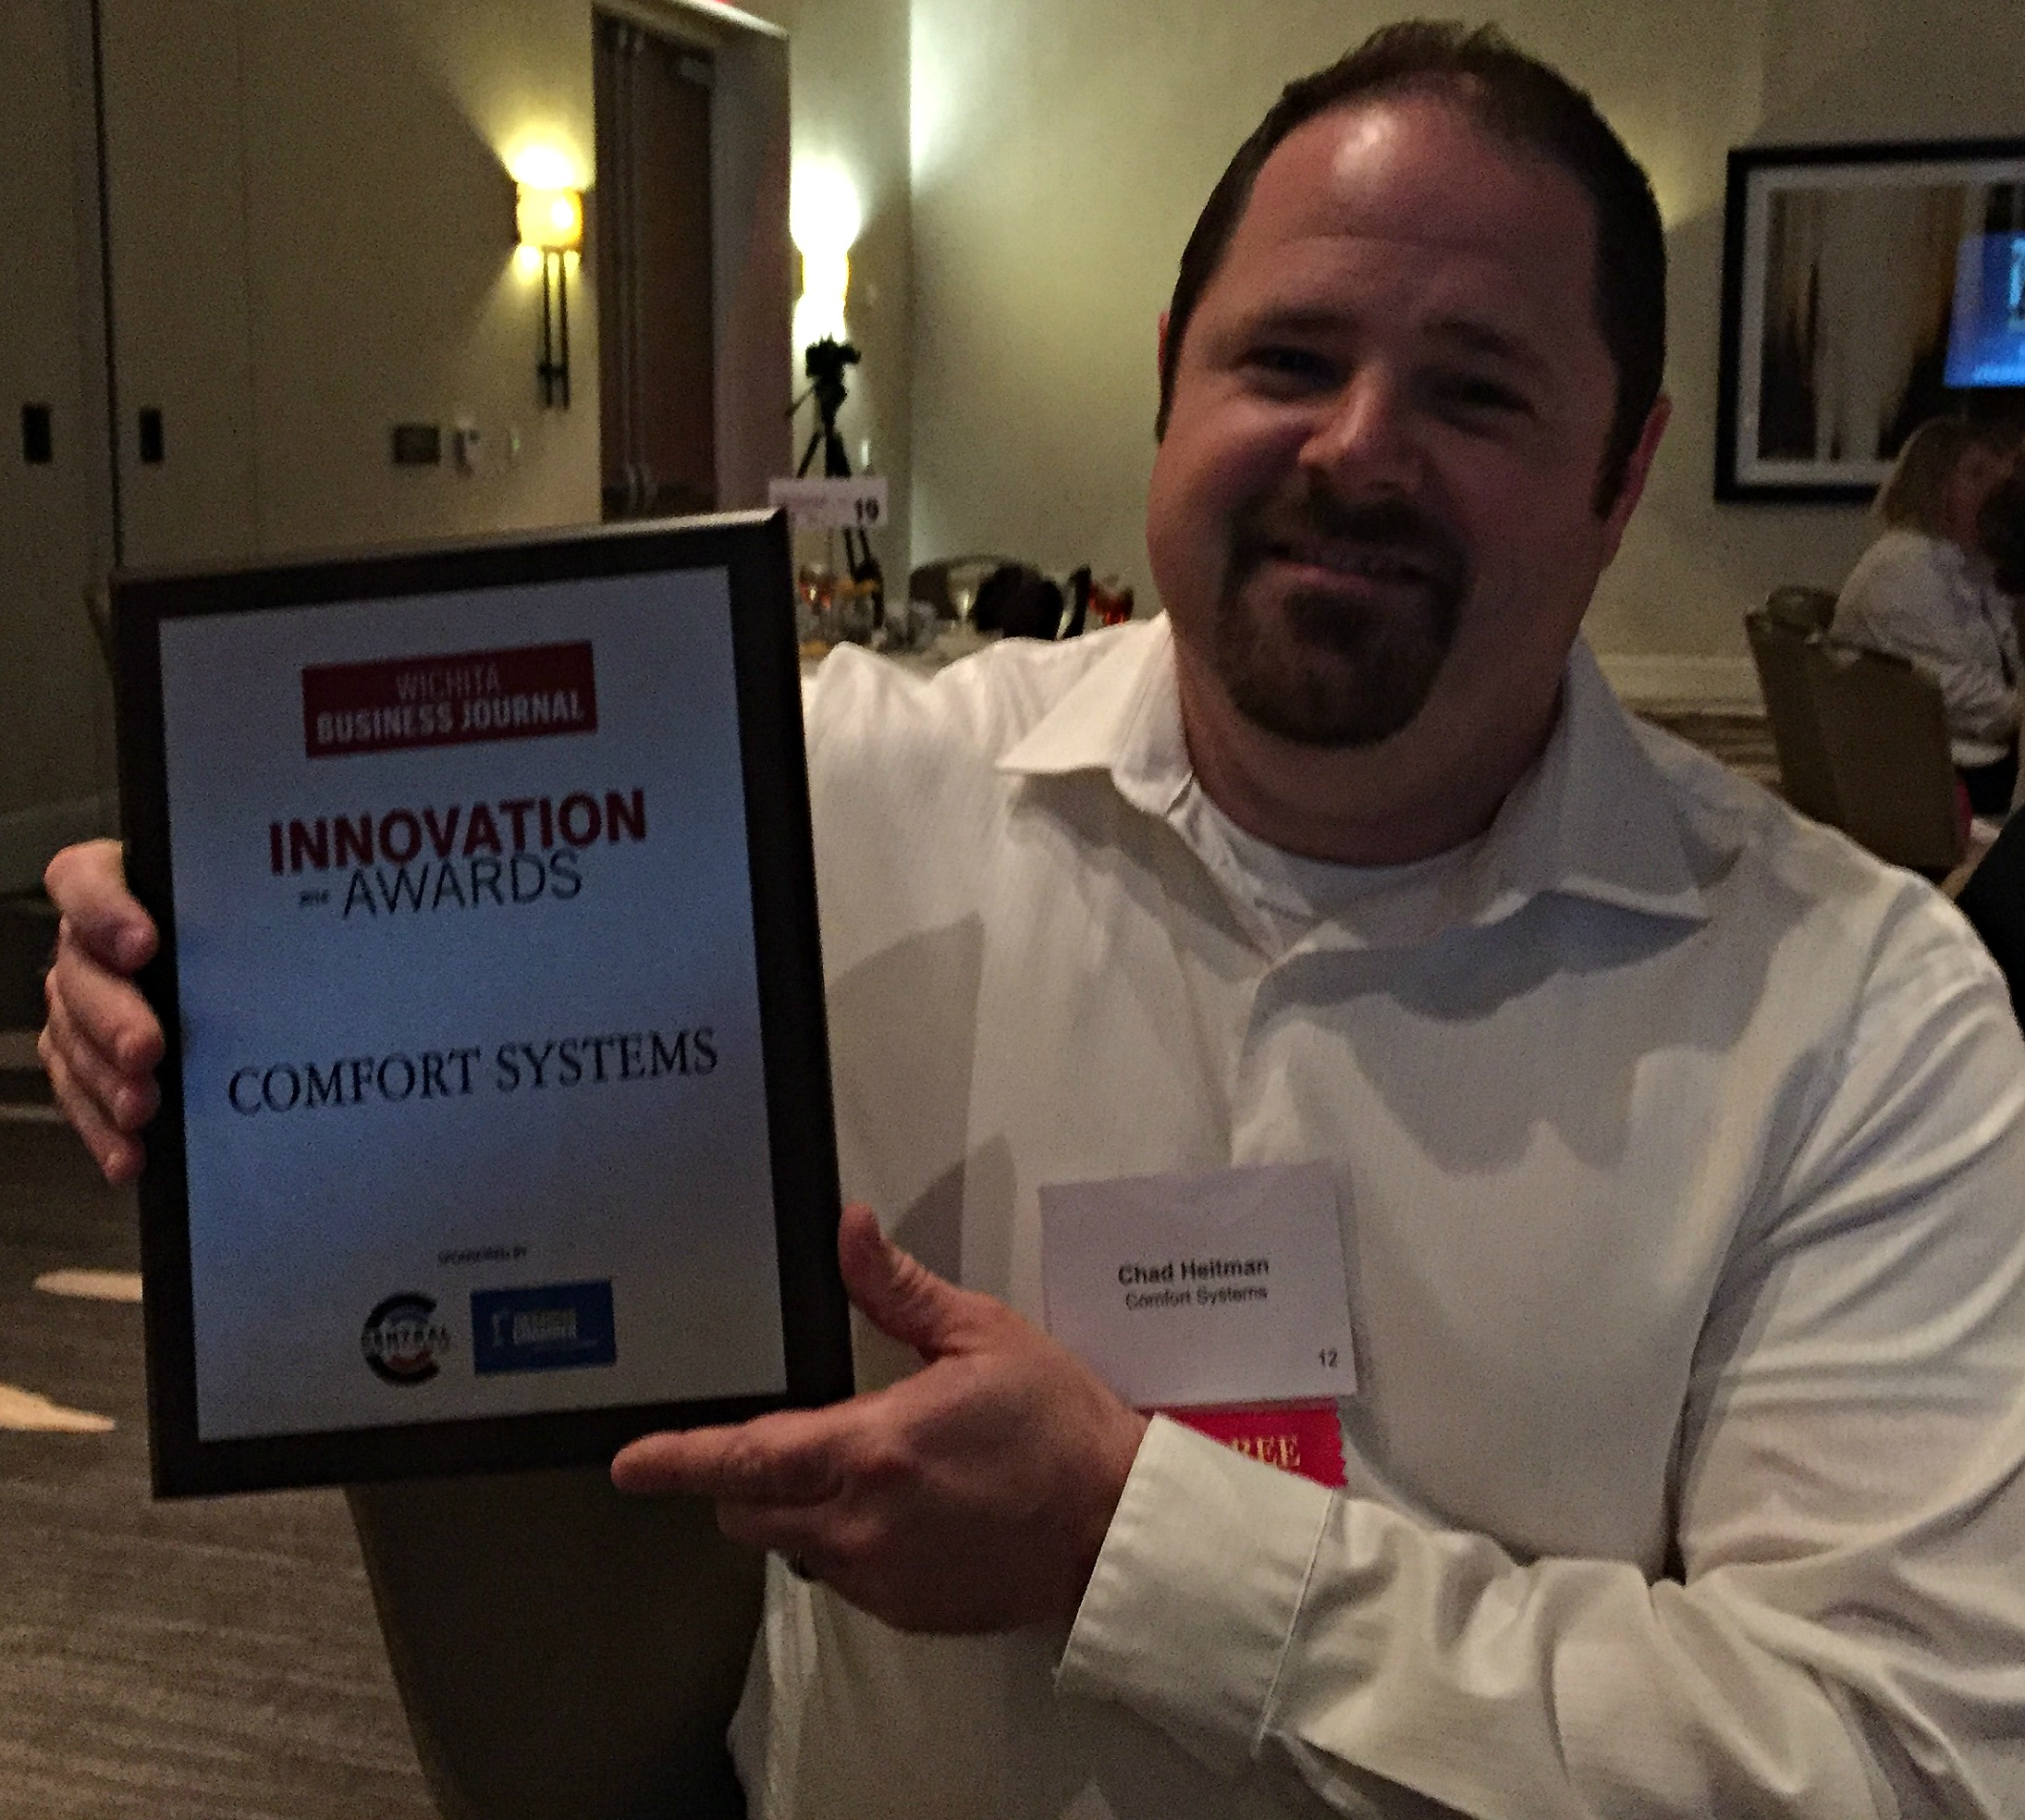 GM of Comfort Systems, Chad Heitman, accepting his innovation award